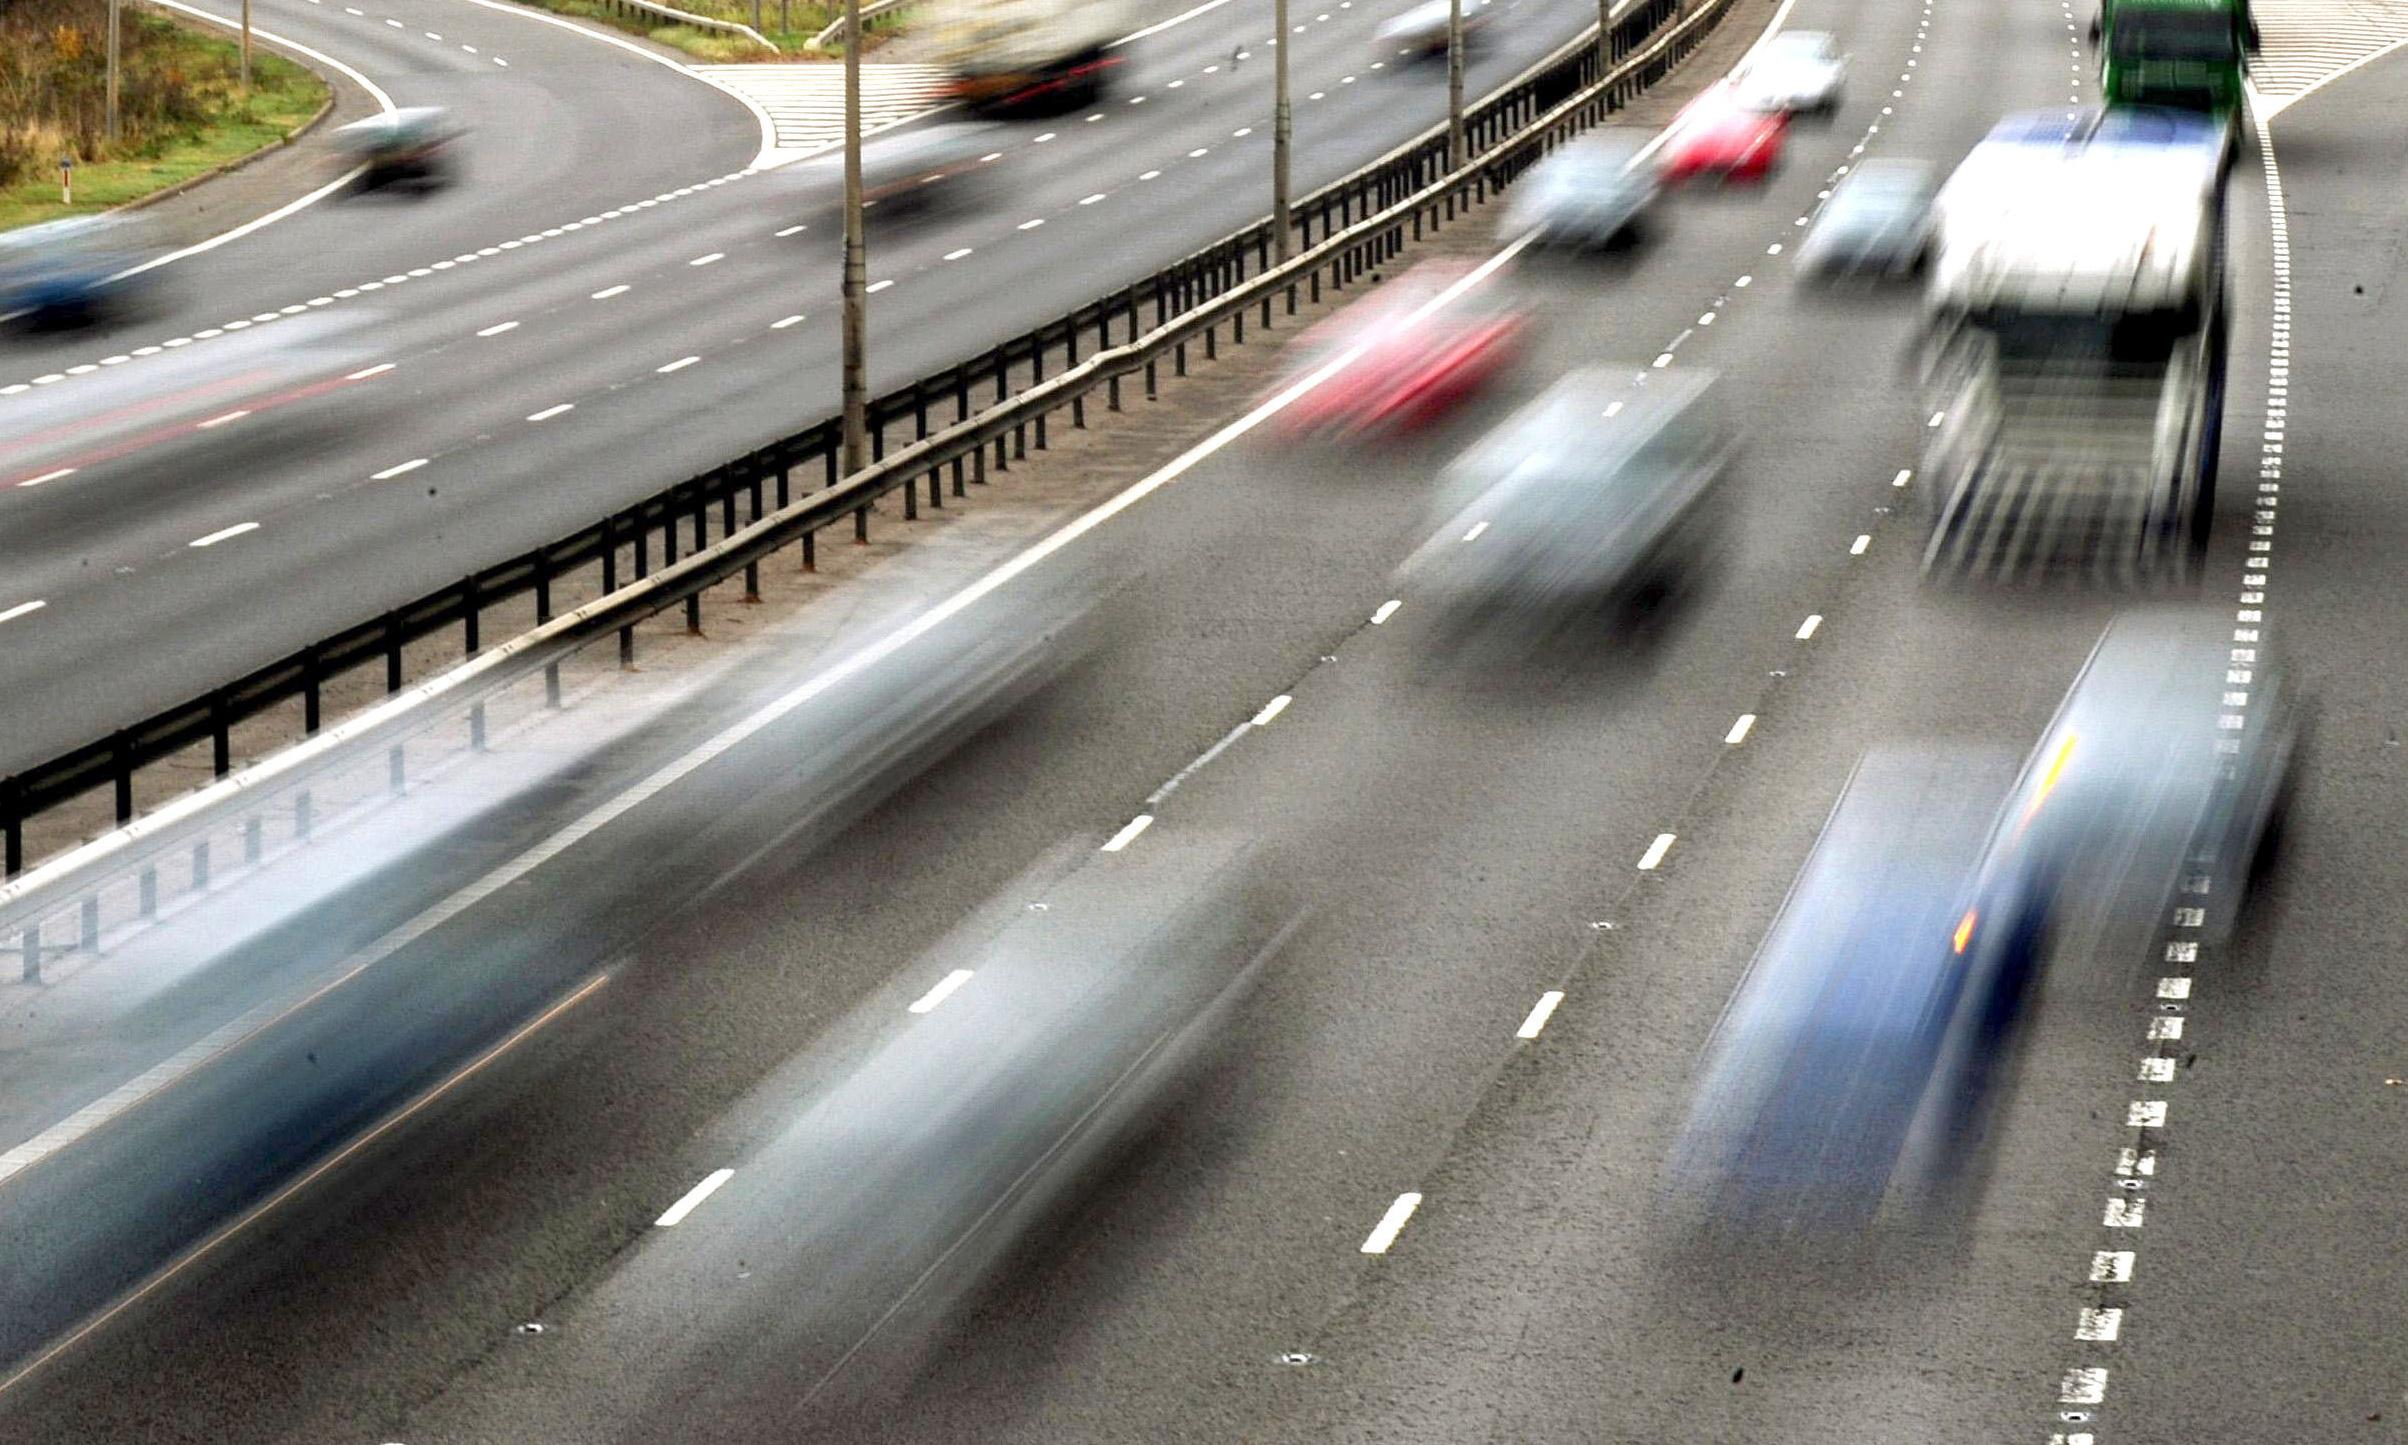 Leaver go-slow on roads leads to prosecutions